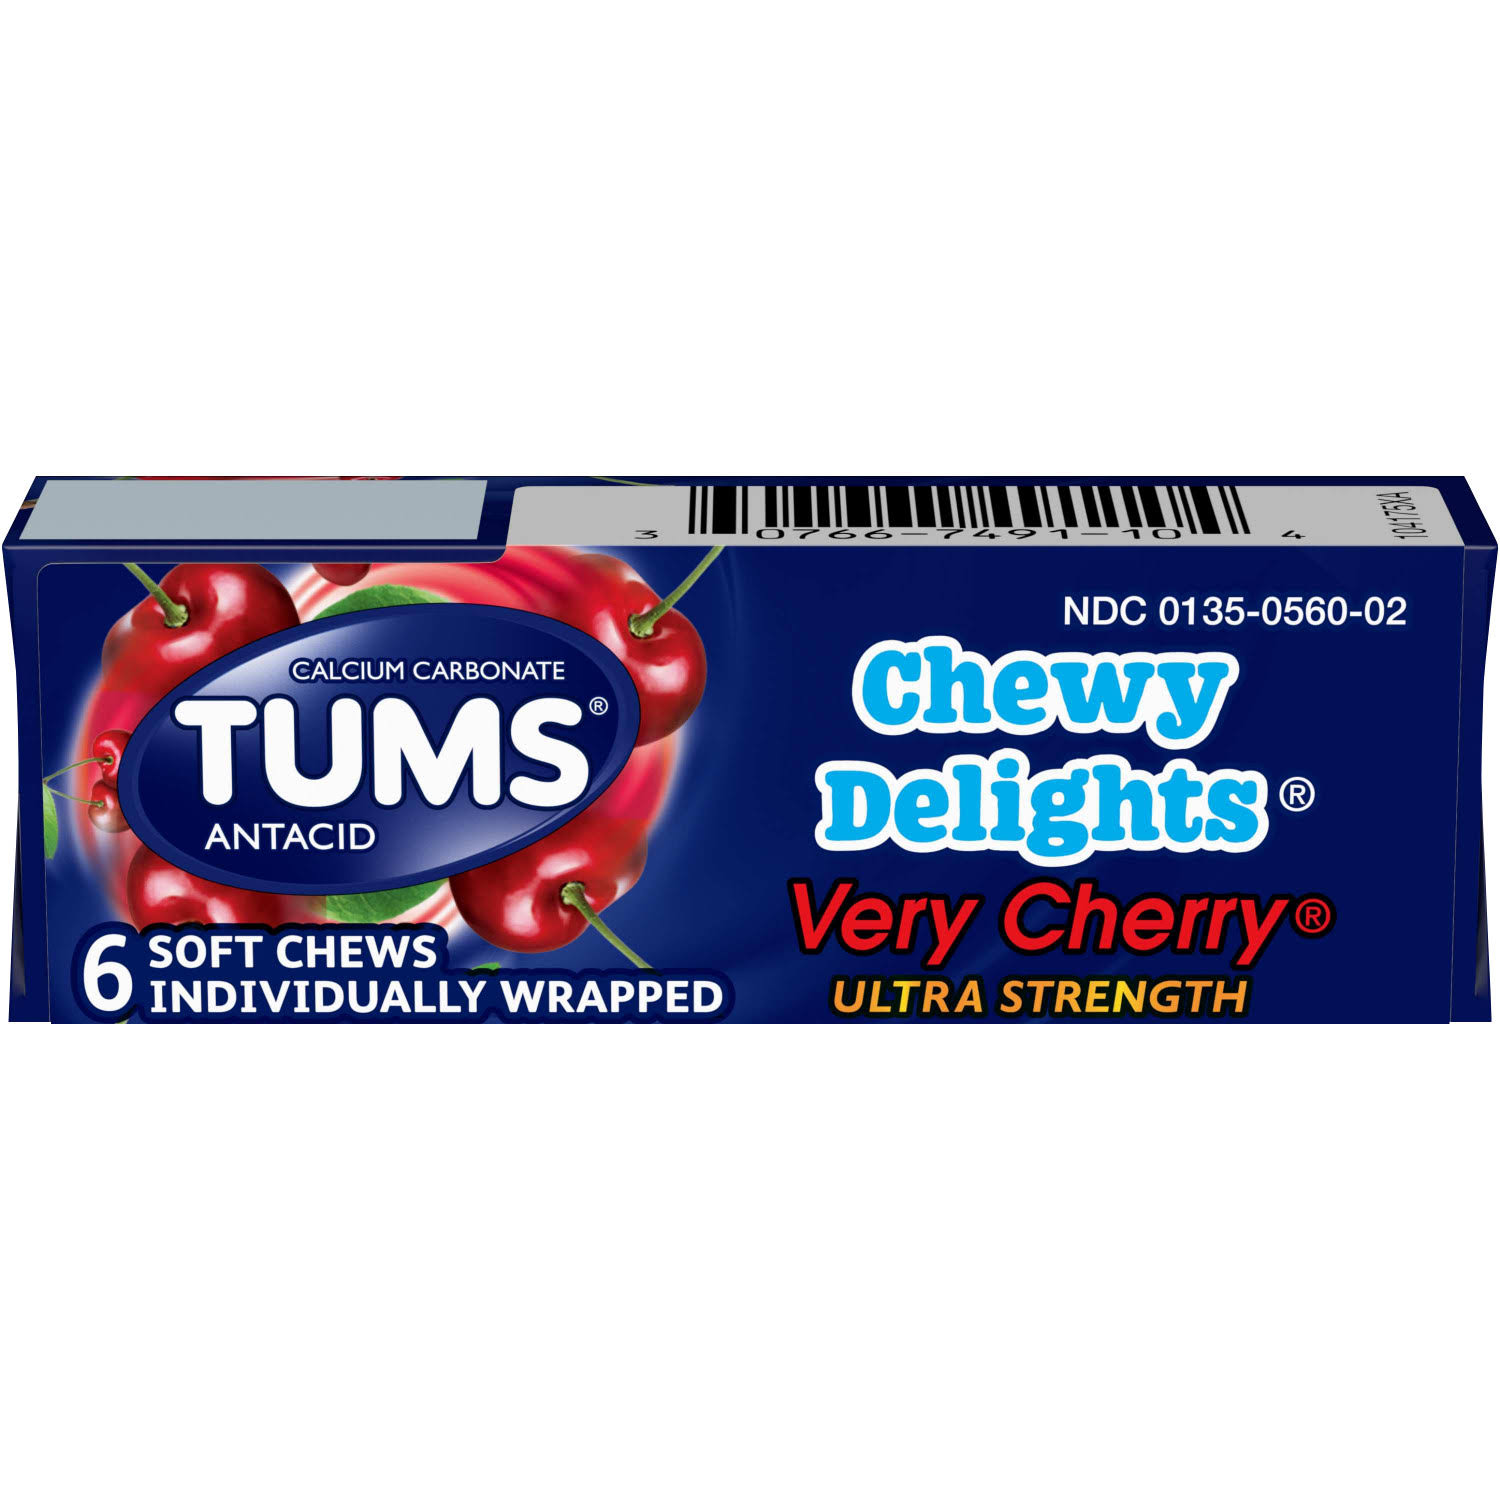 Tums Chewy Delights Antacid - Very Cherry, 6ct